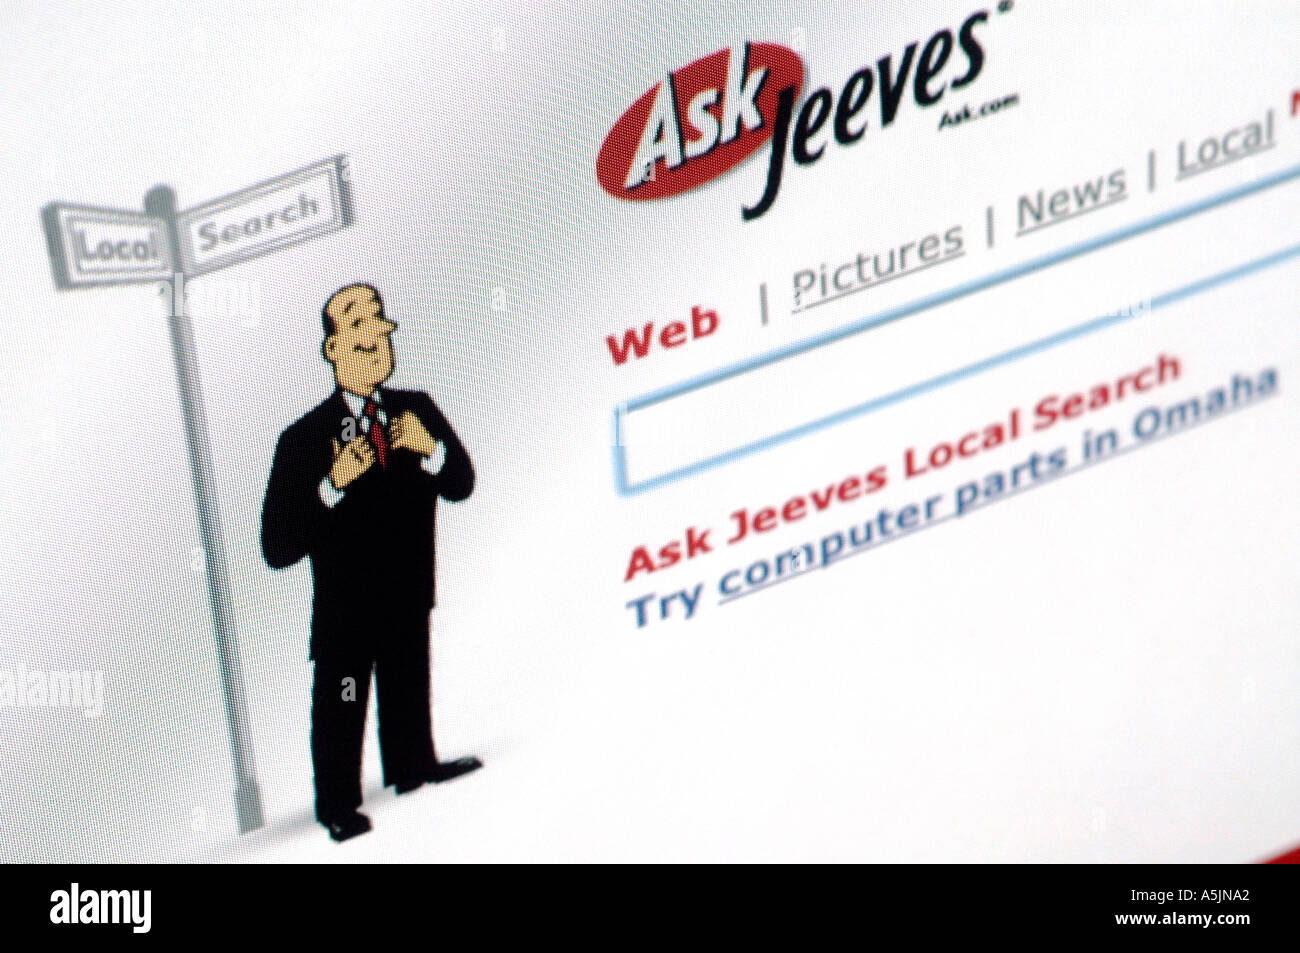 Confirm. agree Adult ask jeeves consider, that